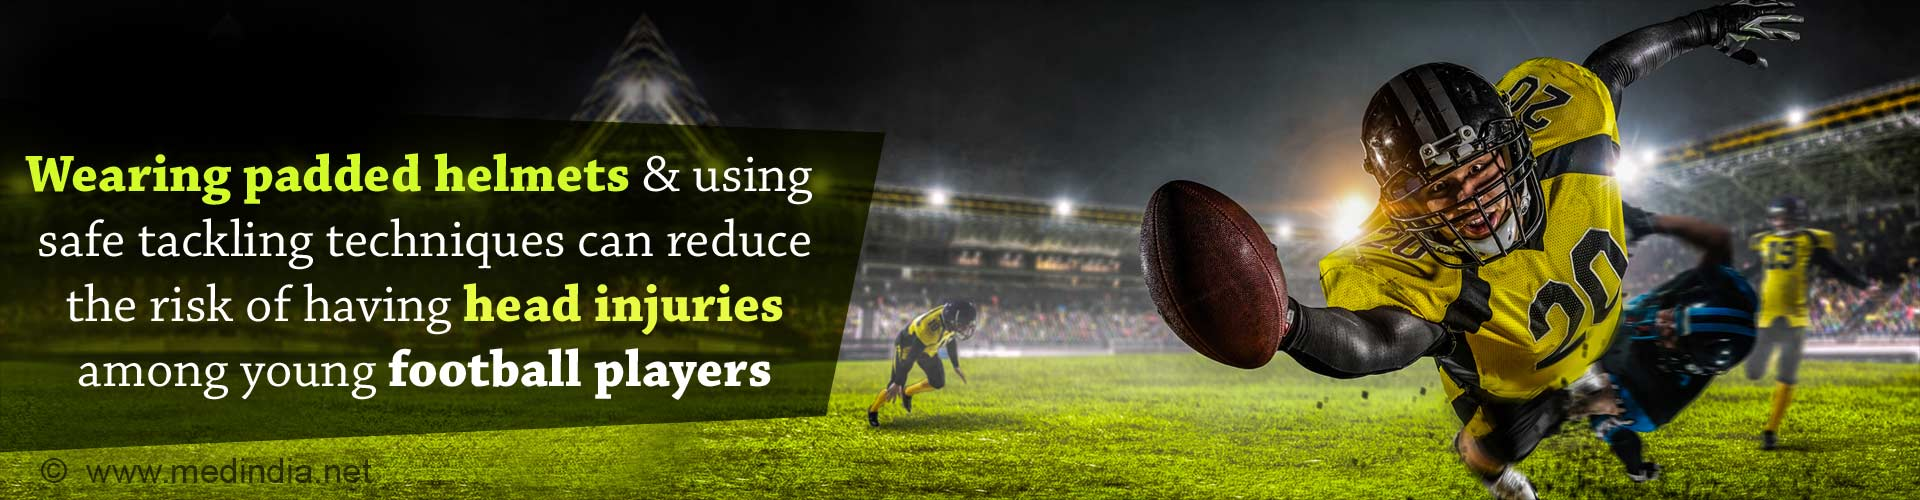 Life-saving Ideas to Prevent Head Injuries among Young Football Players